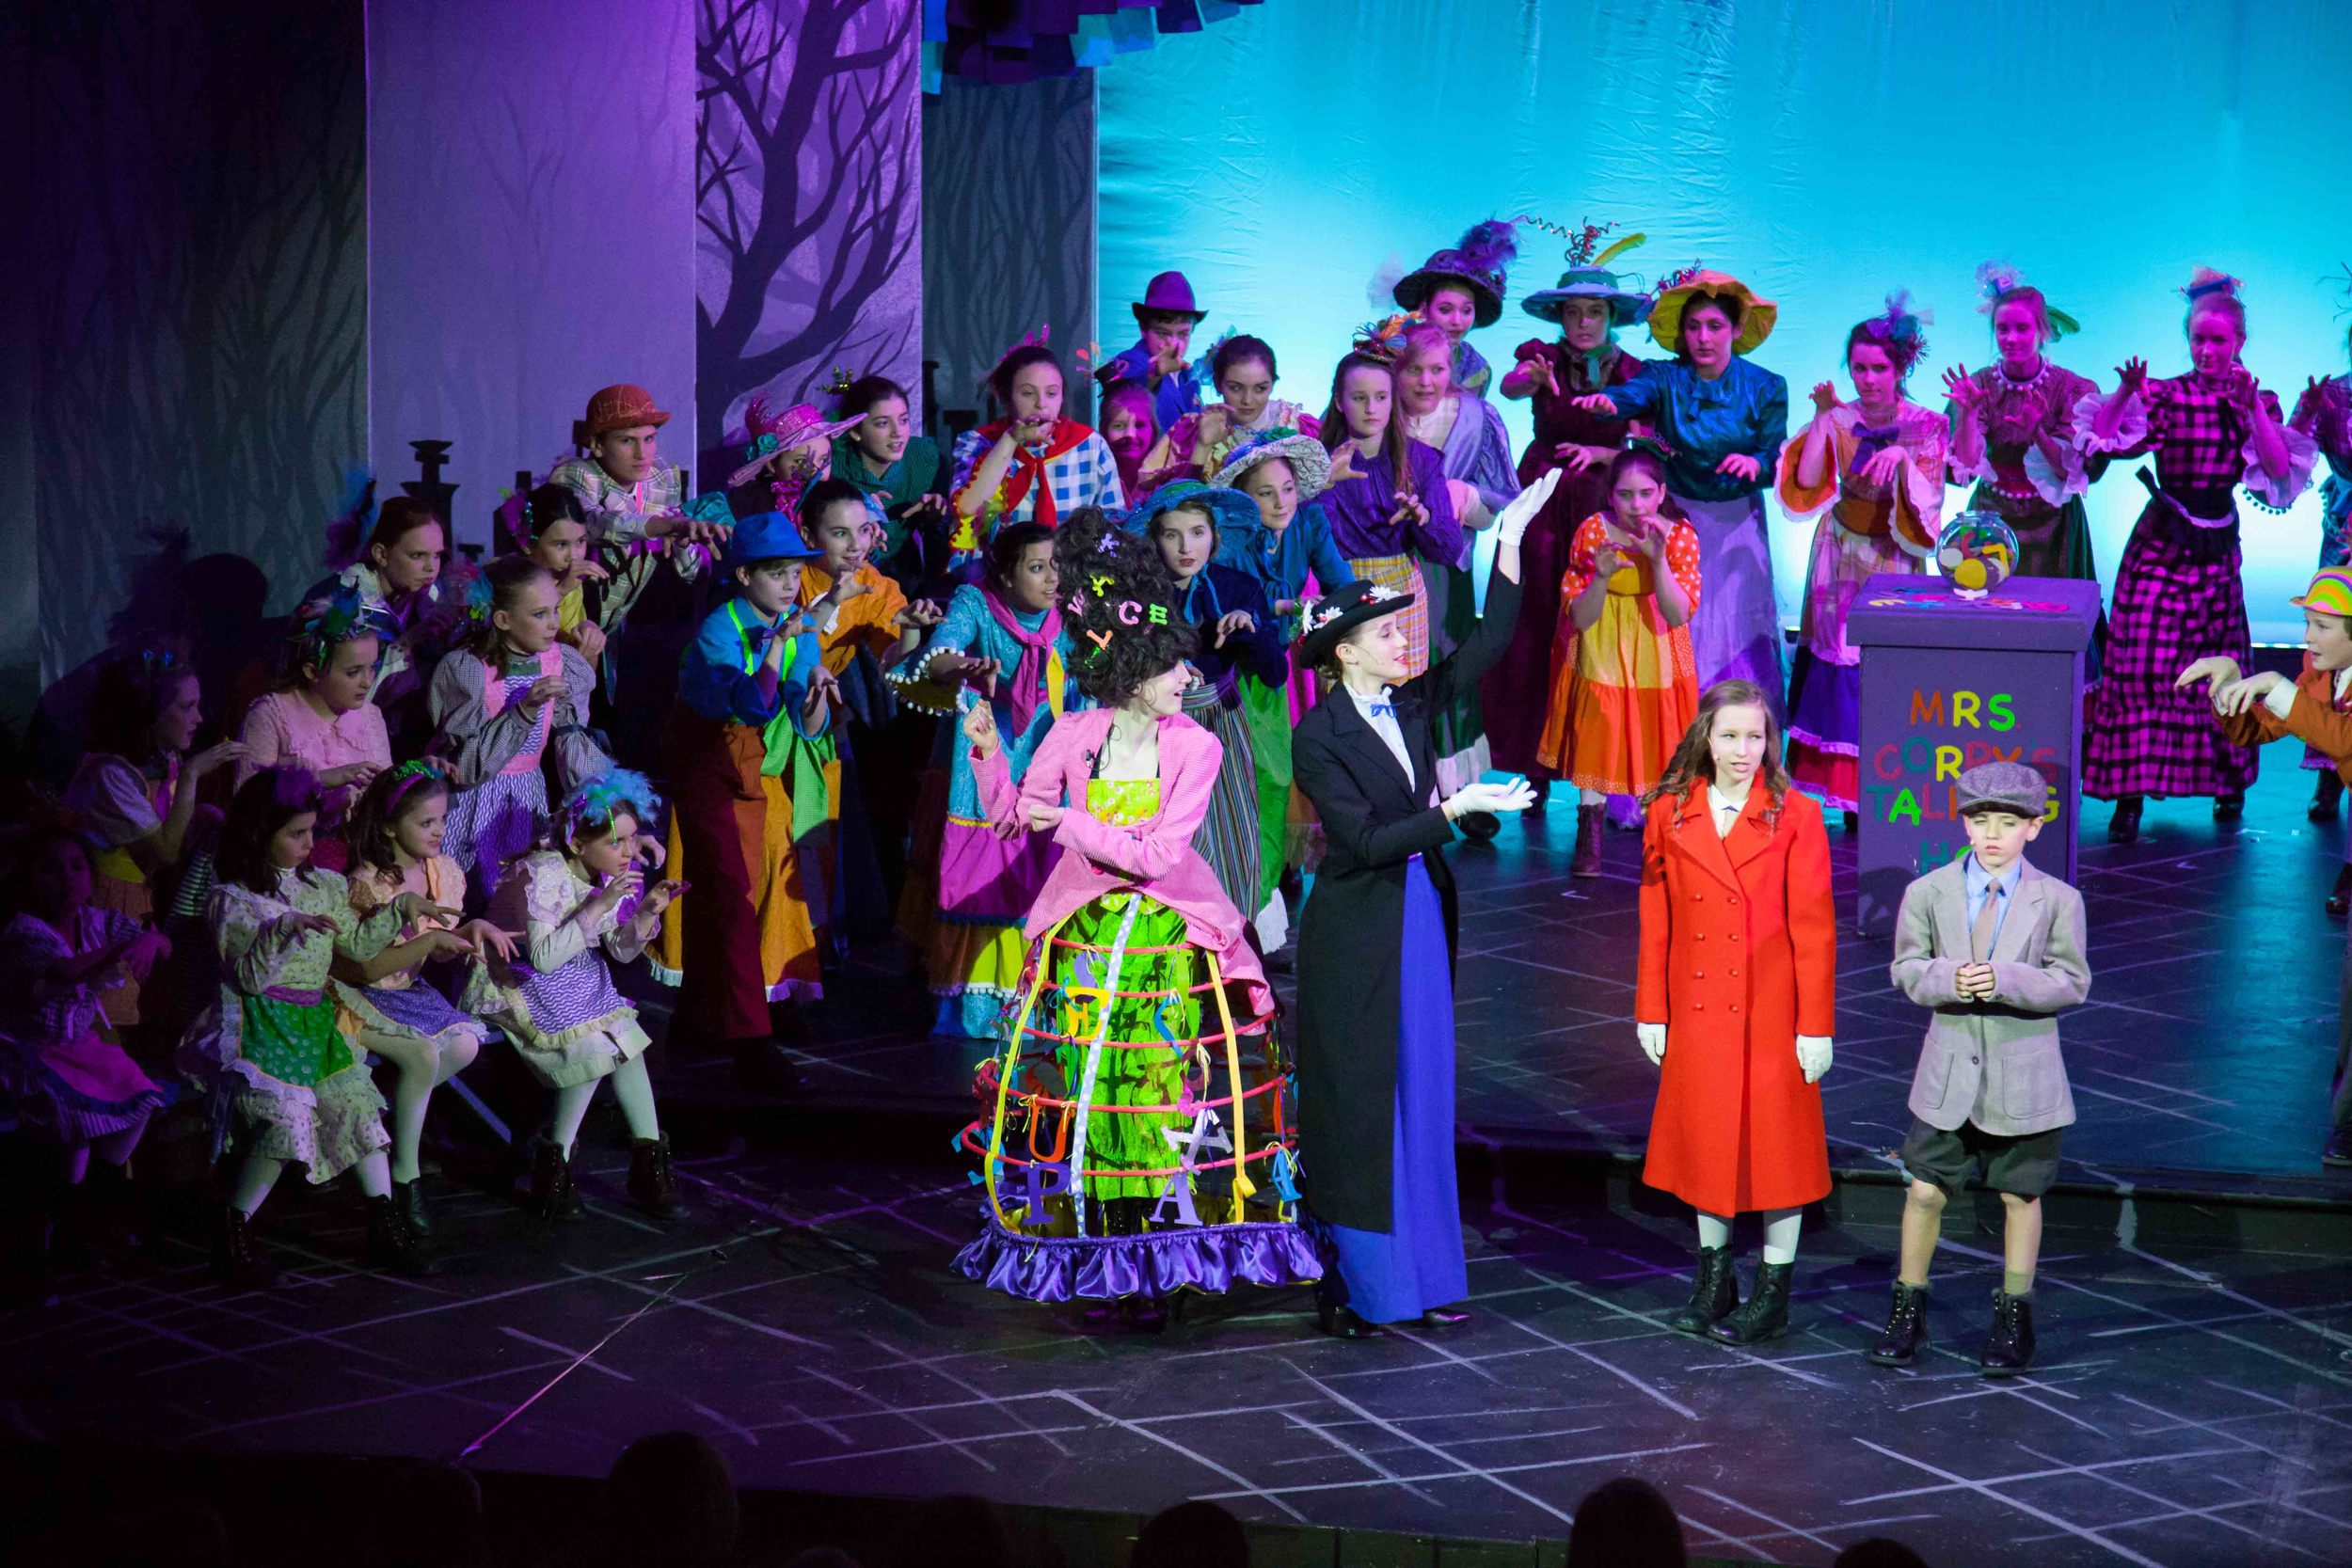 2-4-16 Mary Poppins Proper Cast 0250.jpg